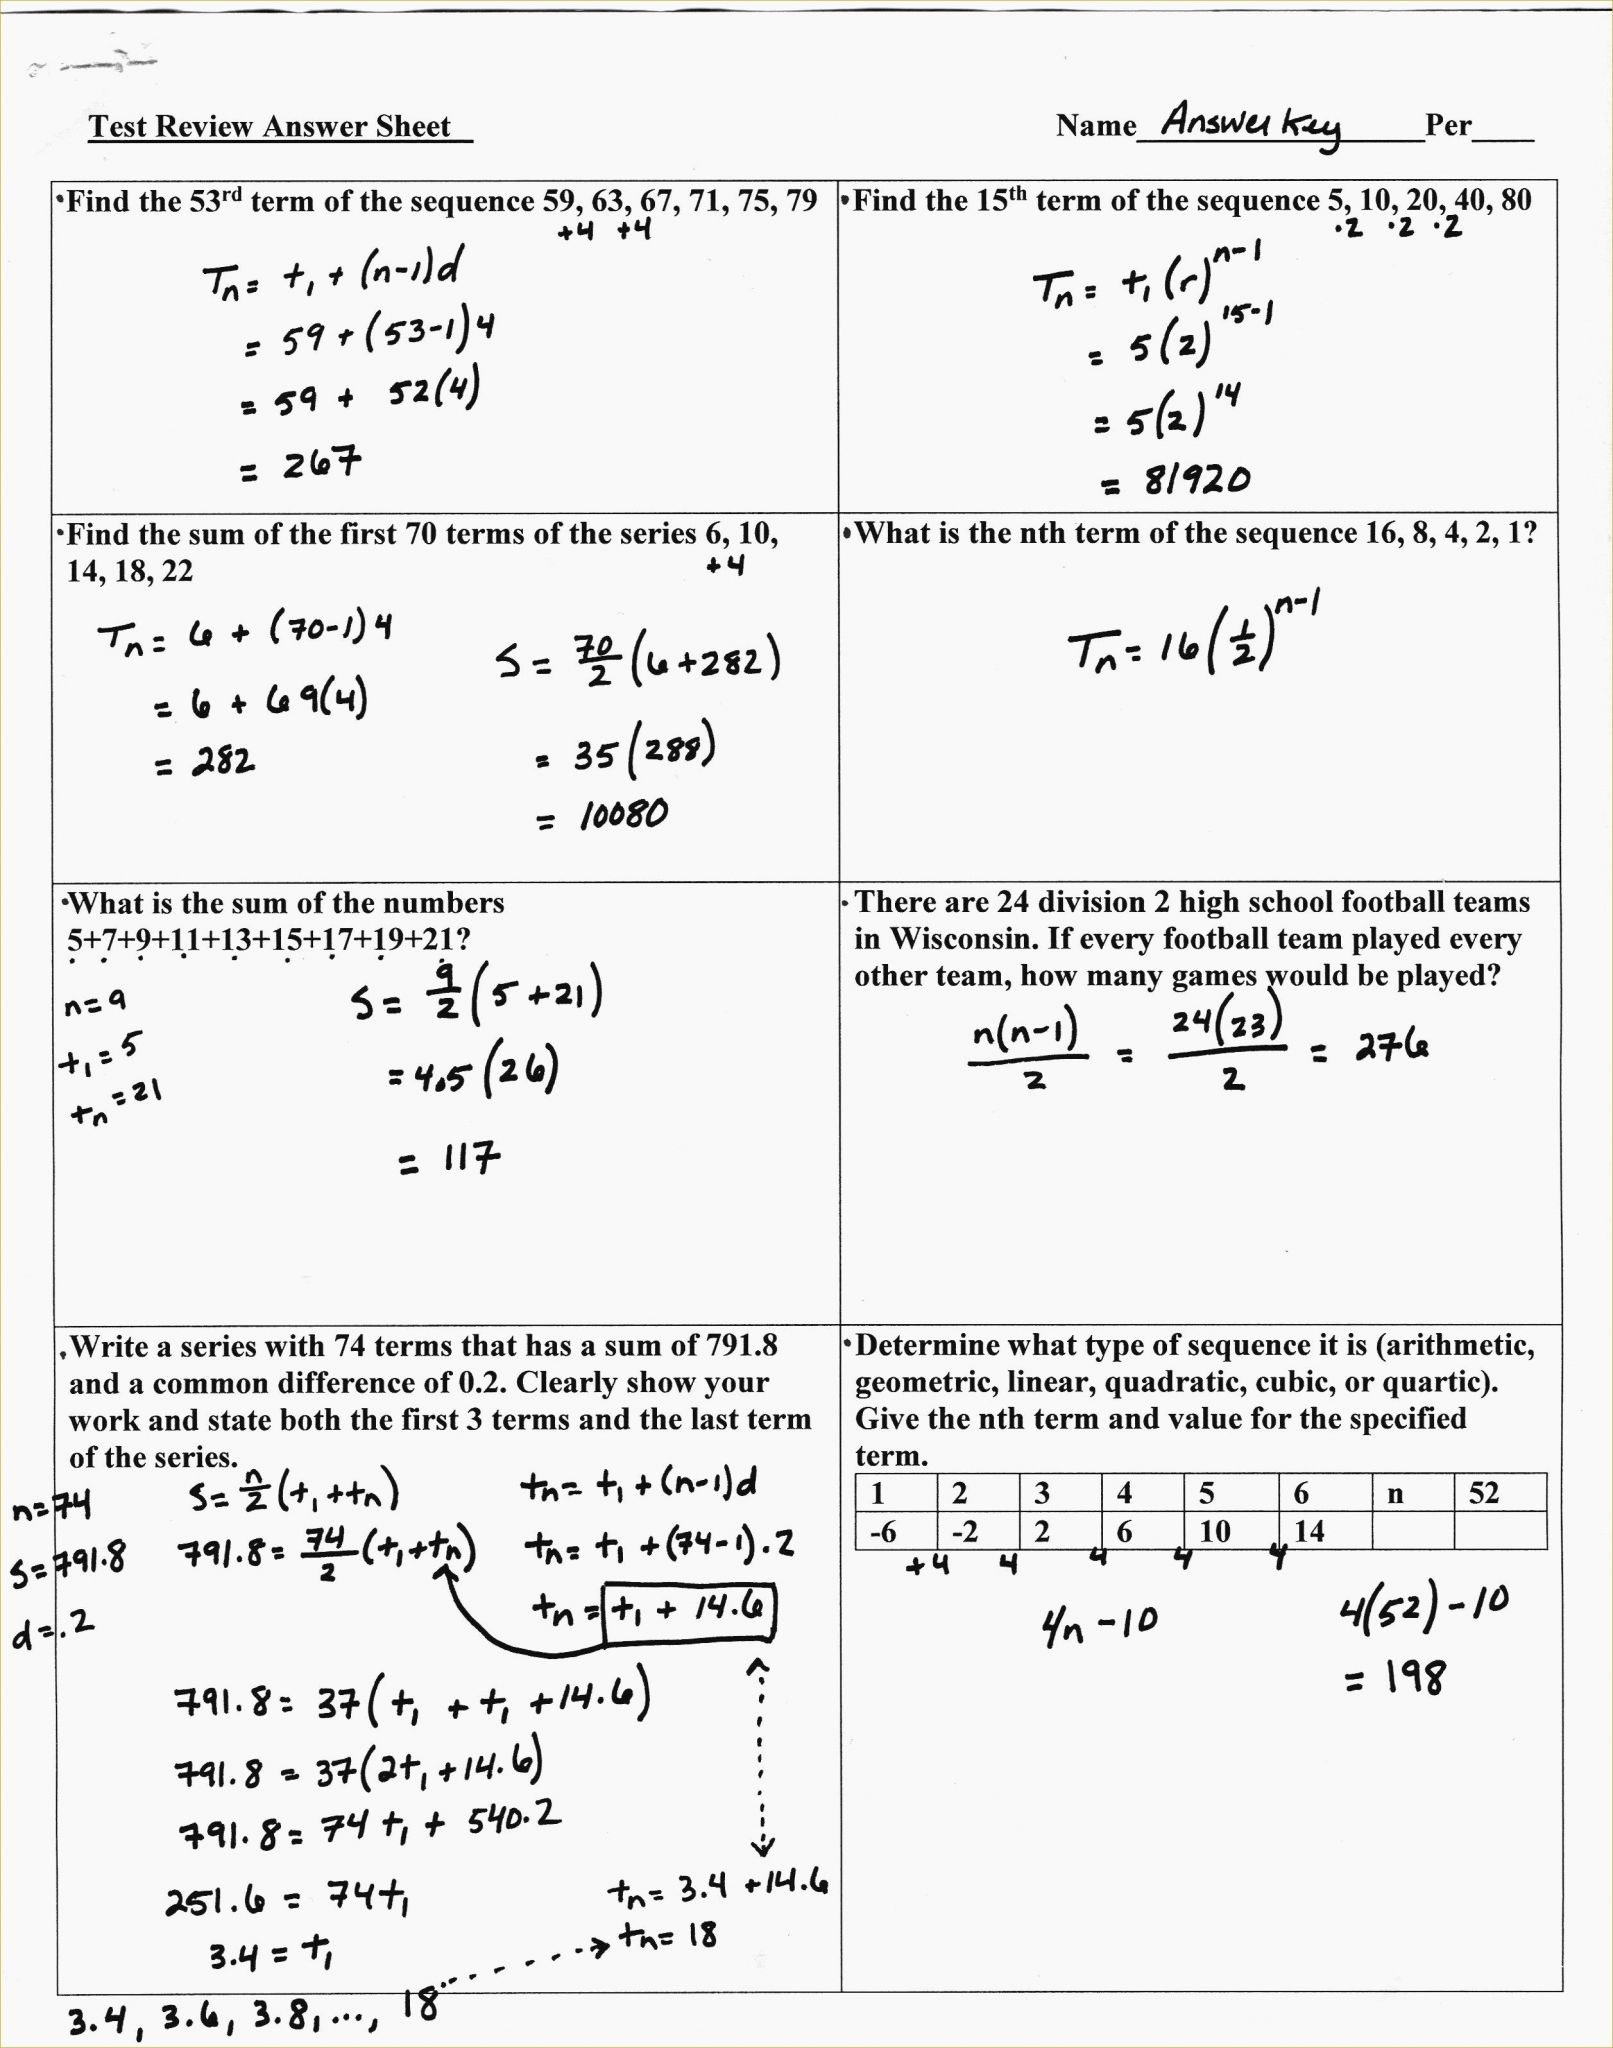 Arithmetic Sequence Worksheet Algebra 1